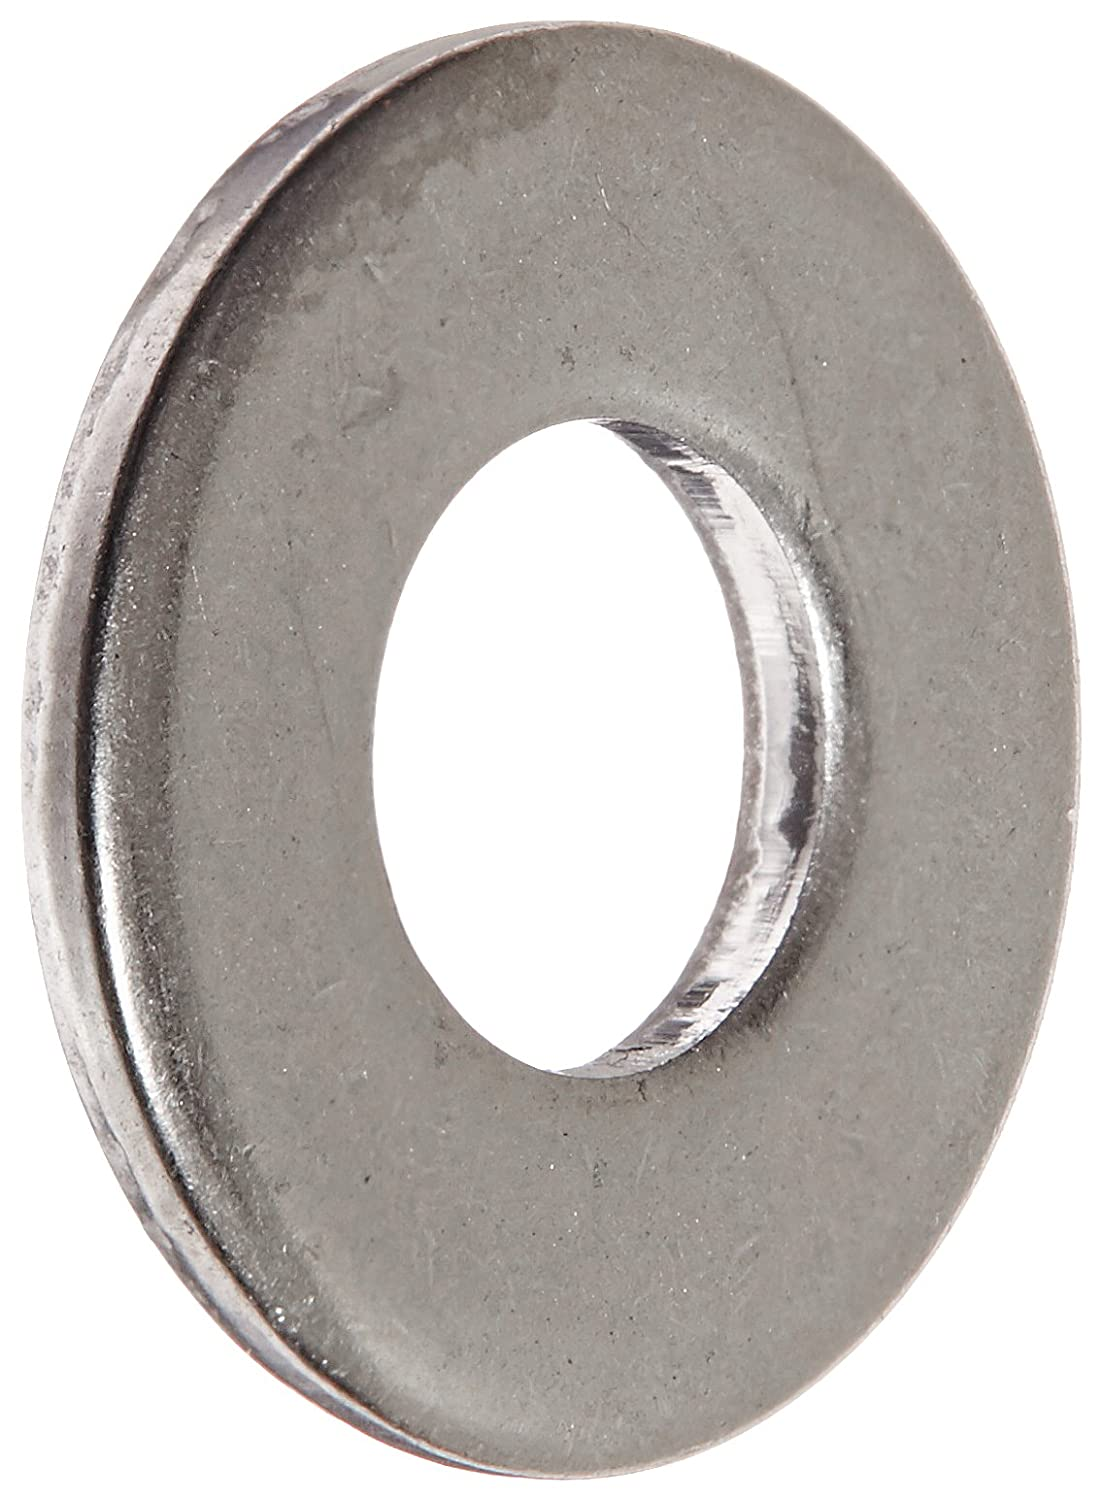 300 Stainless Steel Flat Washer Plain MS Finish 1 Meets 15795 Limited time shopping trial price